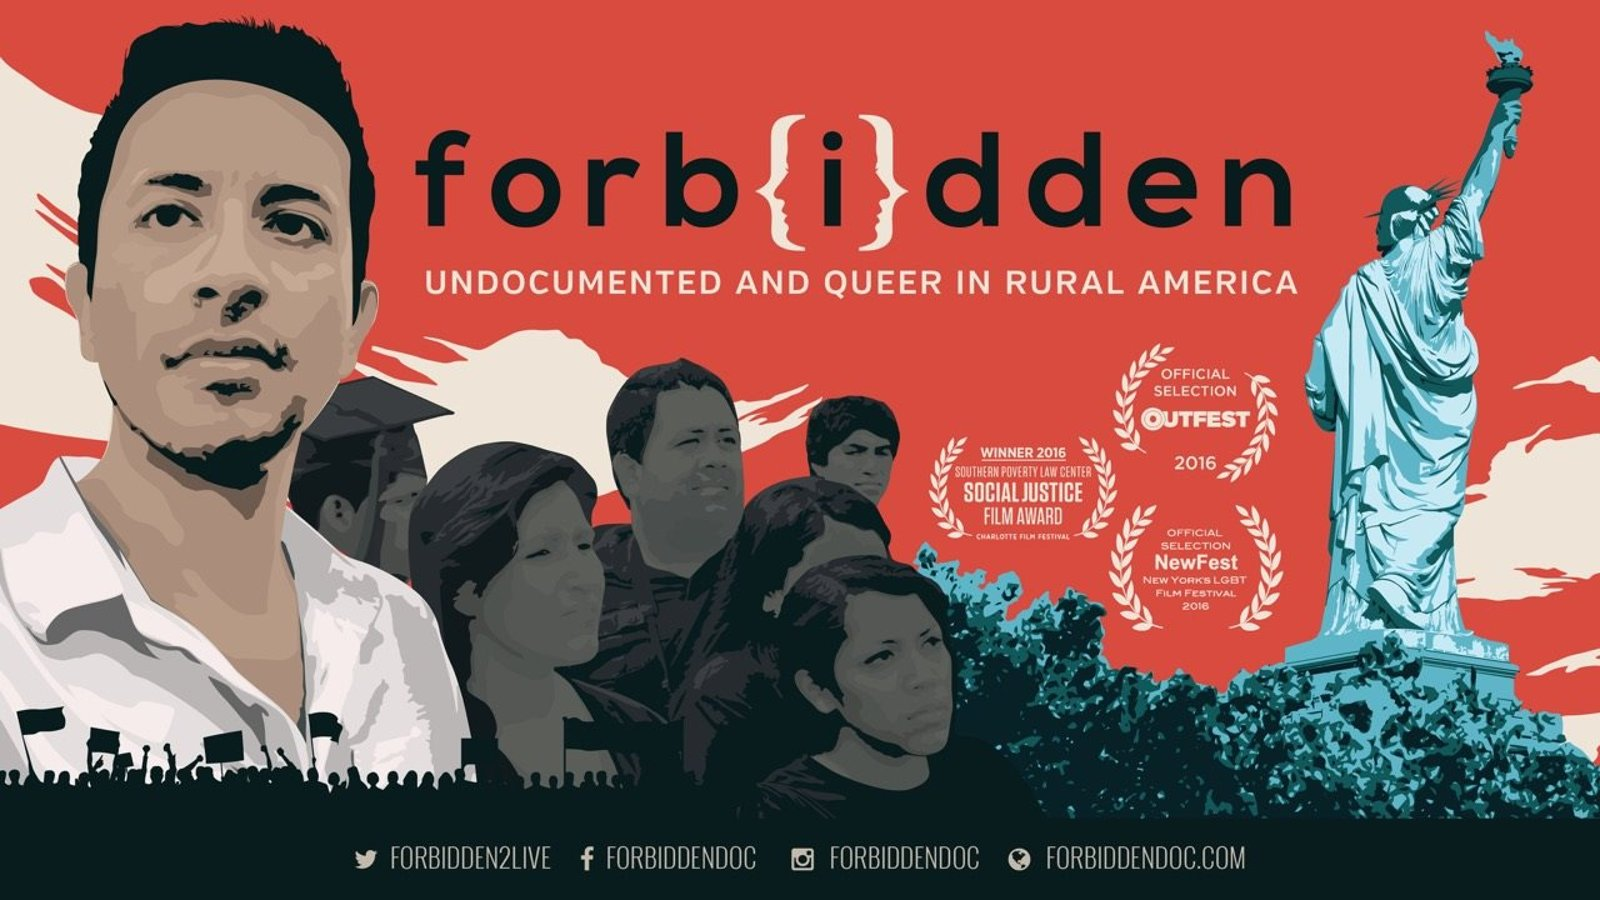 Forbidden - Undocumented and Queer in Rural America